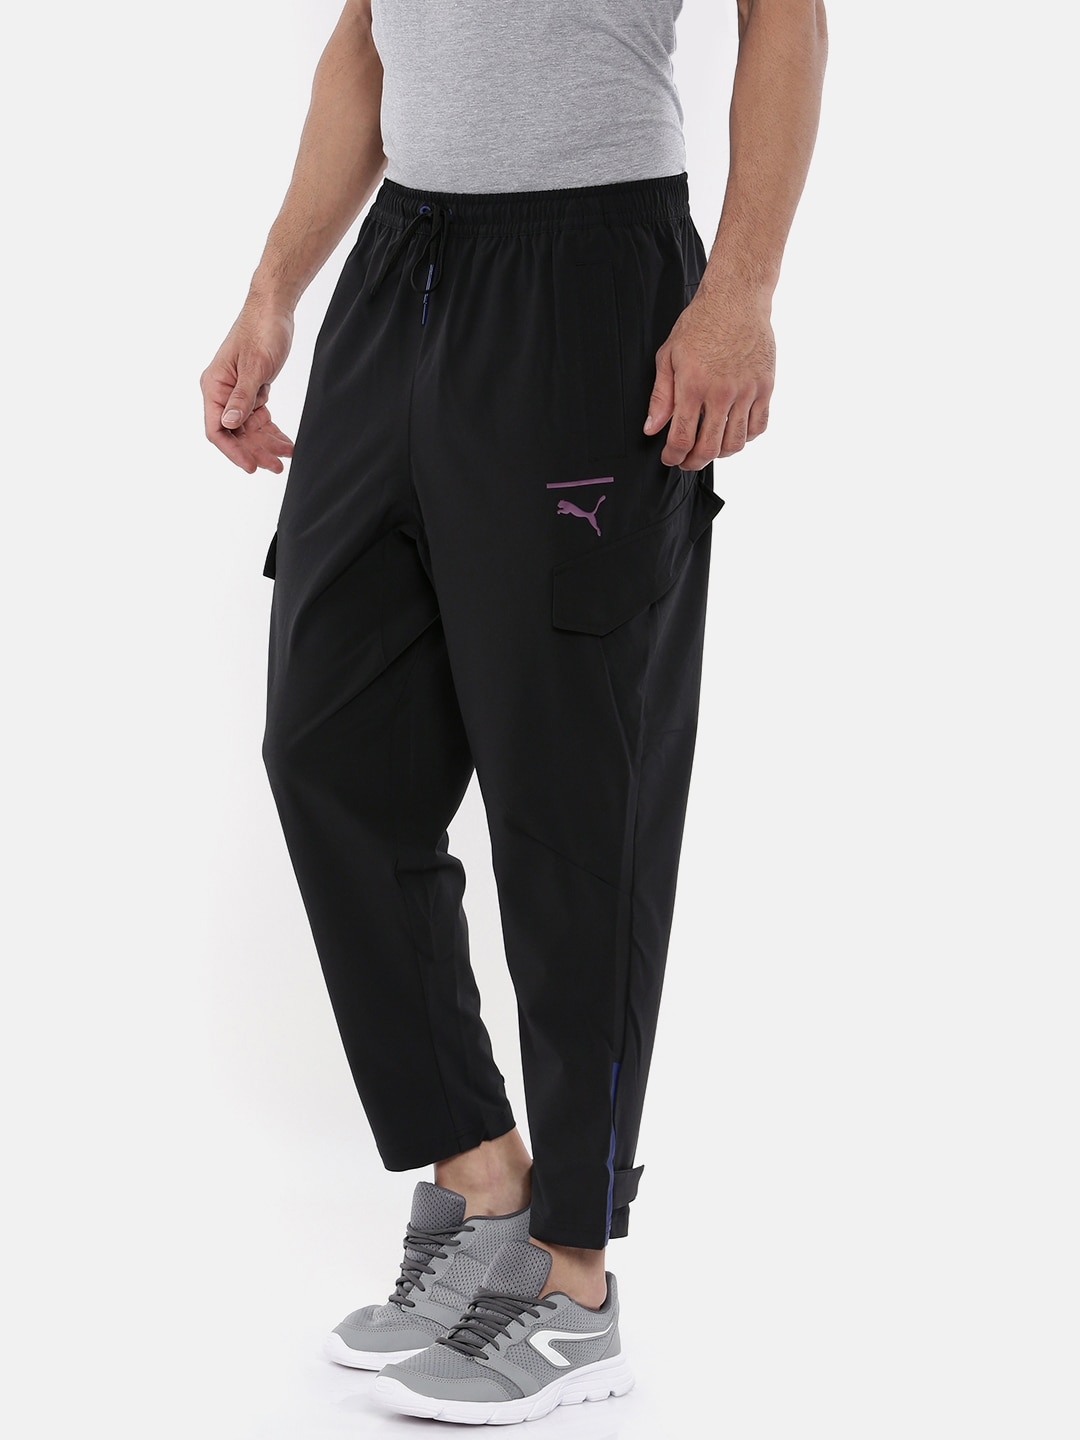 8616c2a787e6 Puma Wiper Tshirts Track Pants Pants - Buy Puma Wiper Tshirts Track Pants  Pants online in India